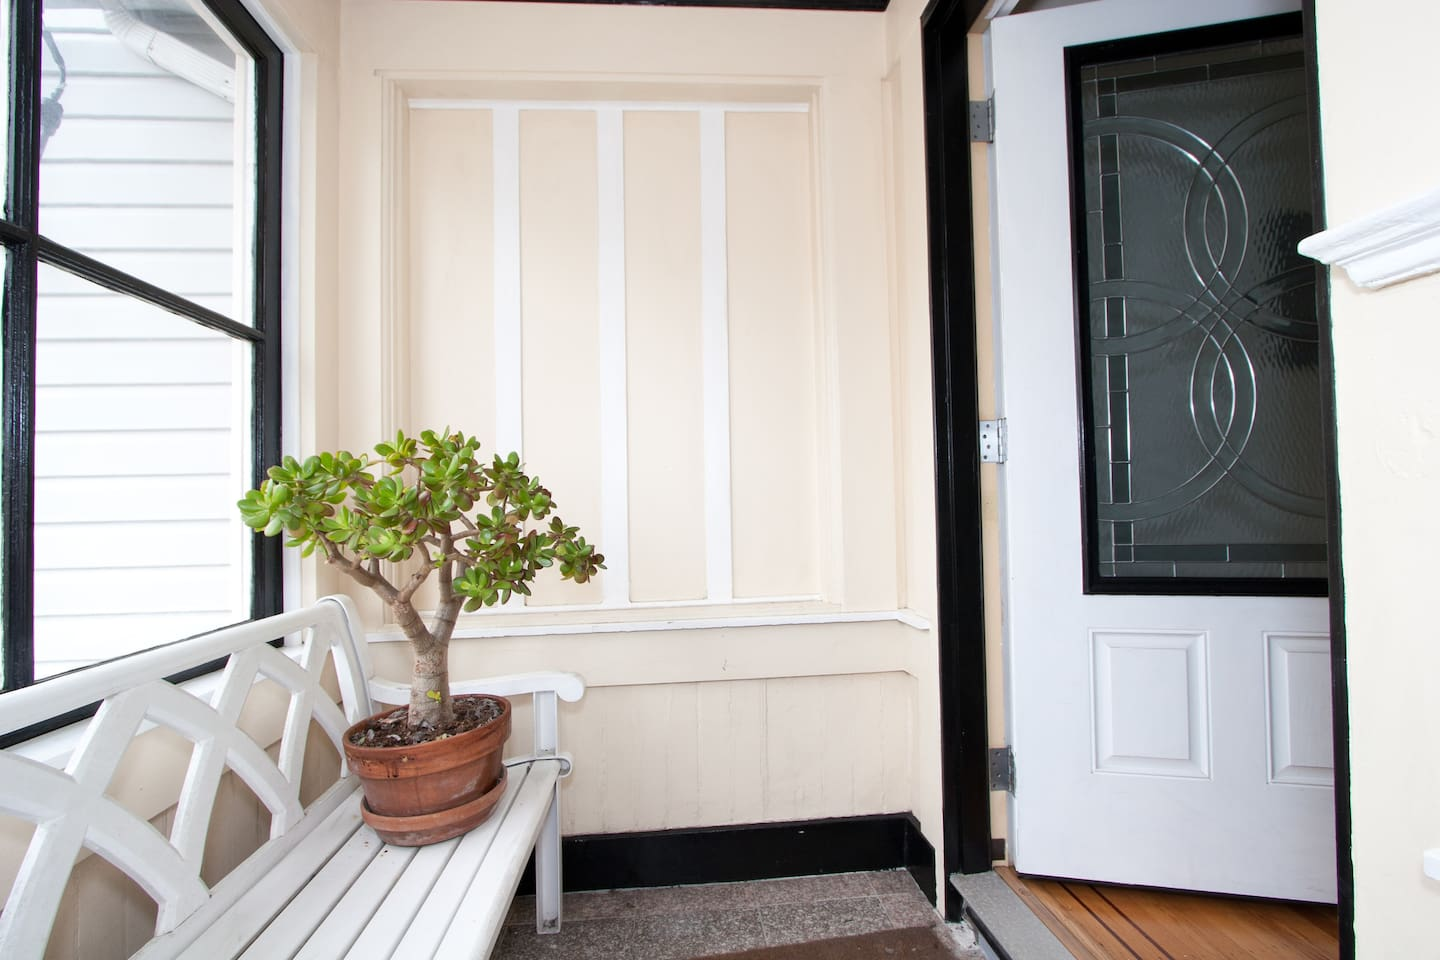 San Francisco 1900's fully remodeled sunny, sunny 700 sq. ft. top floor flat.